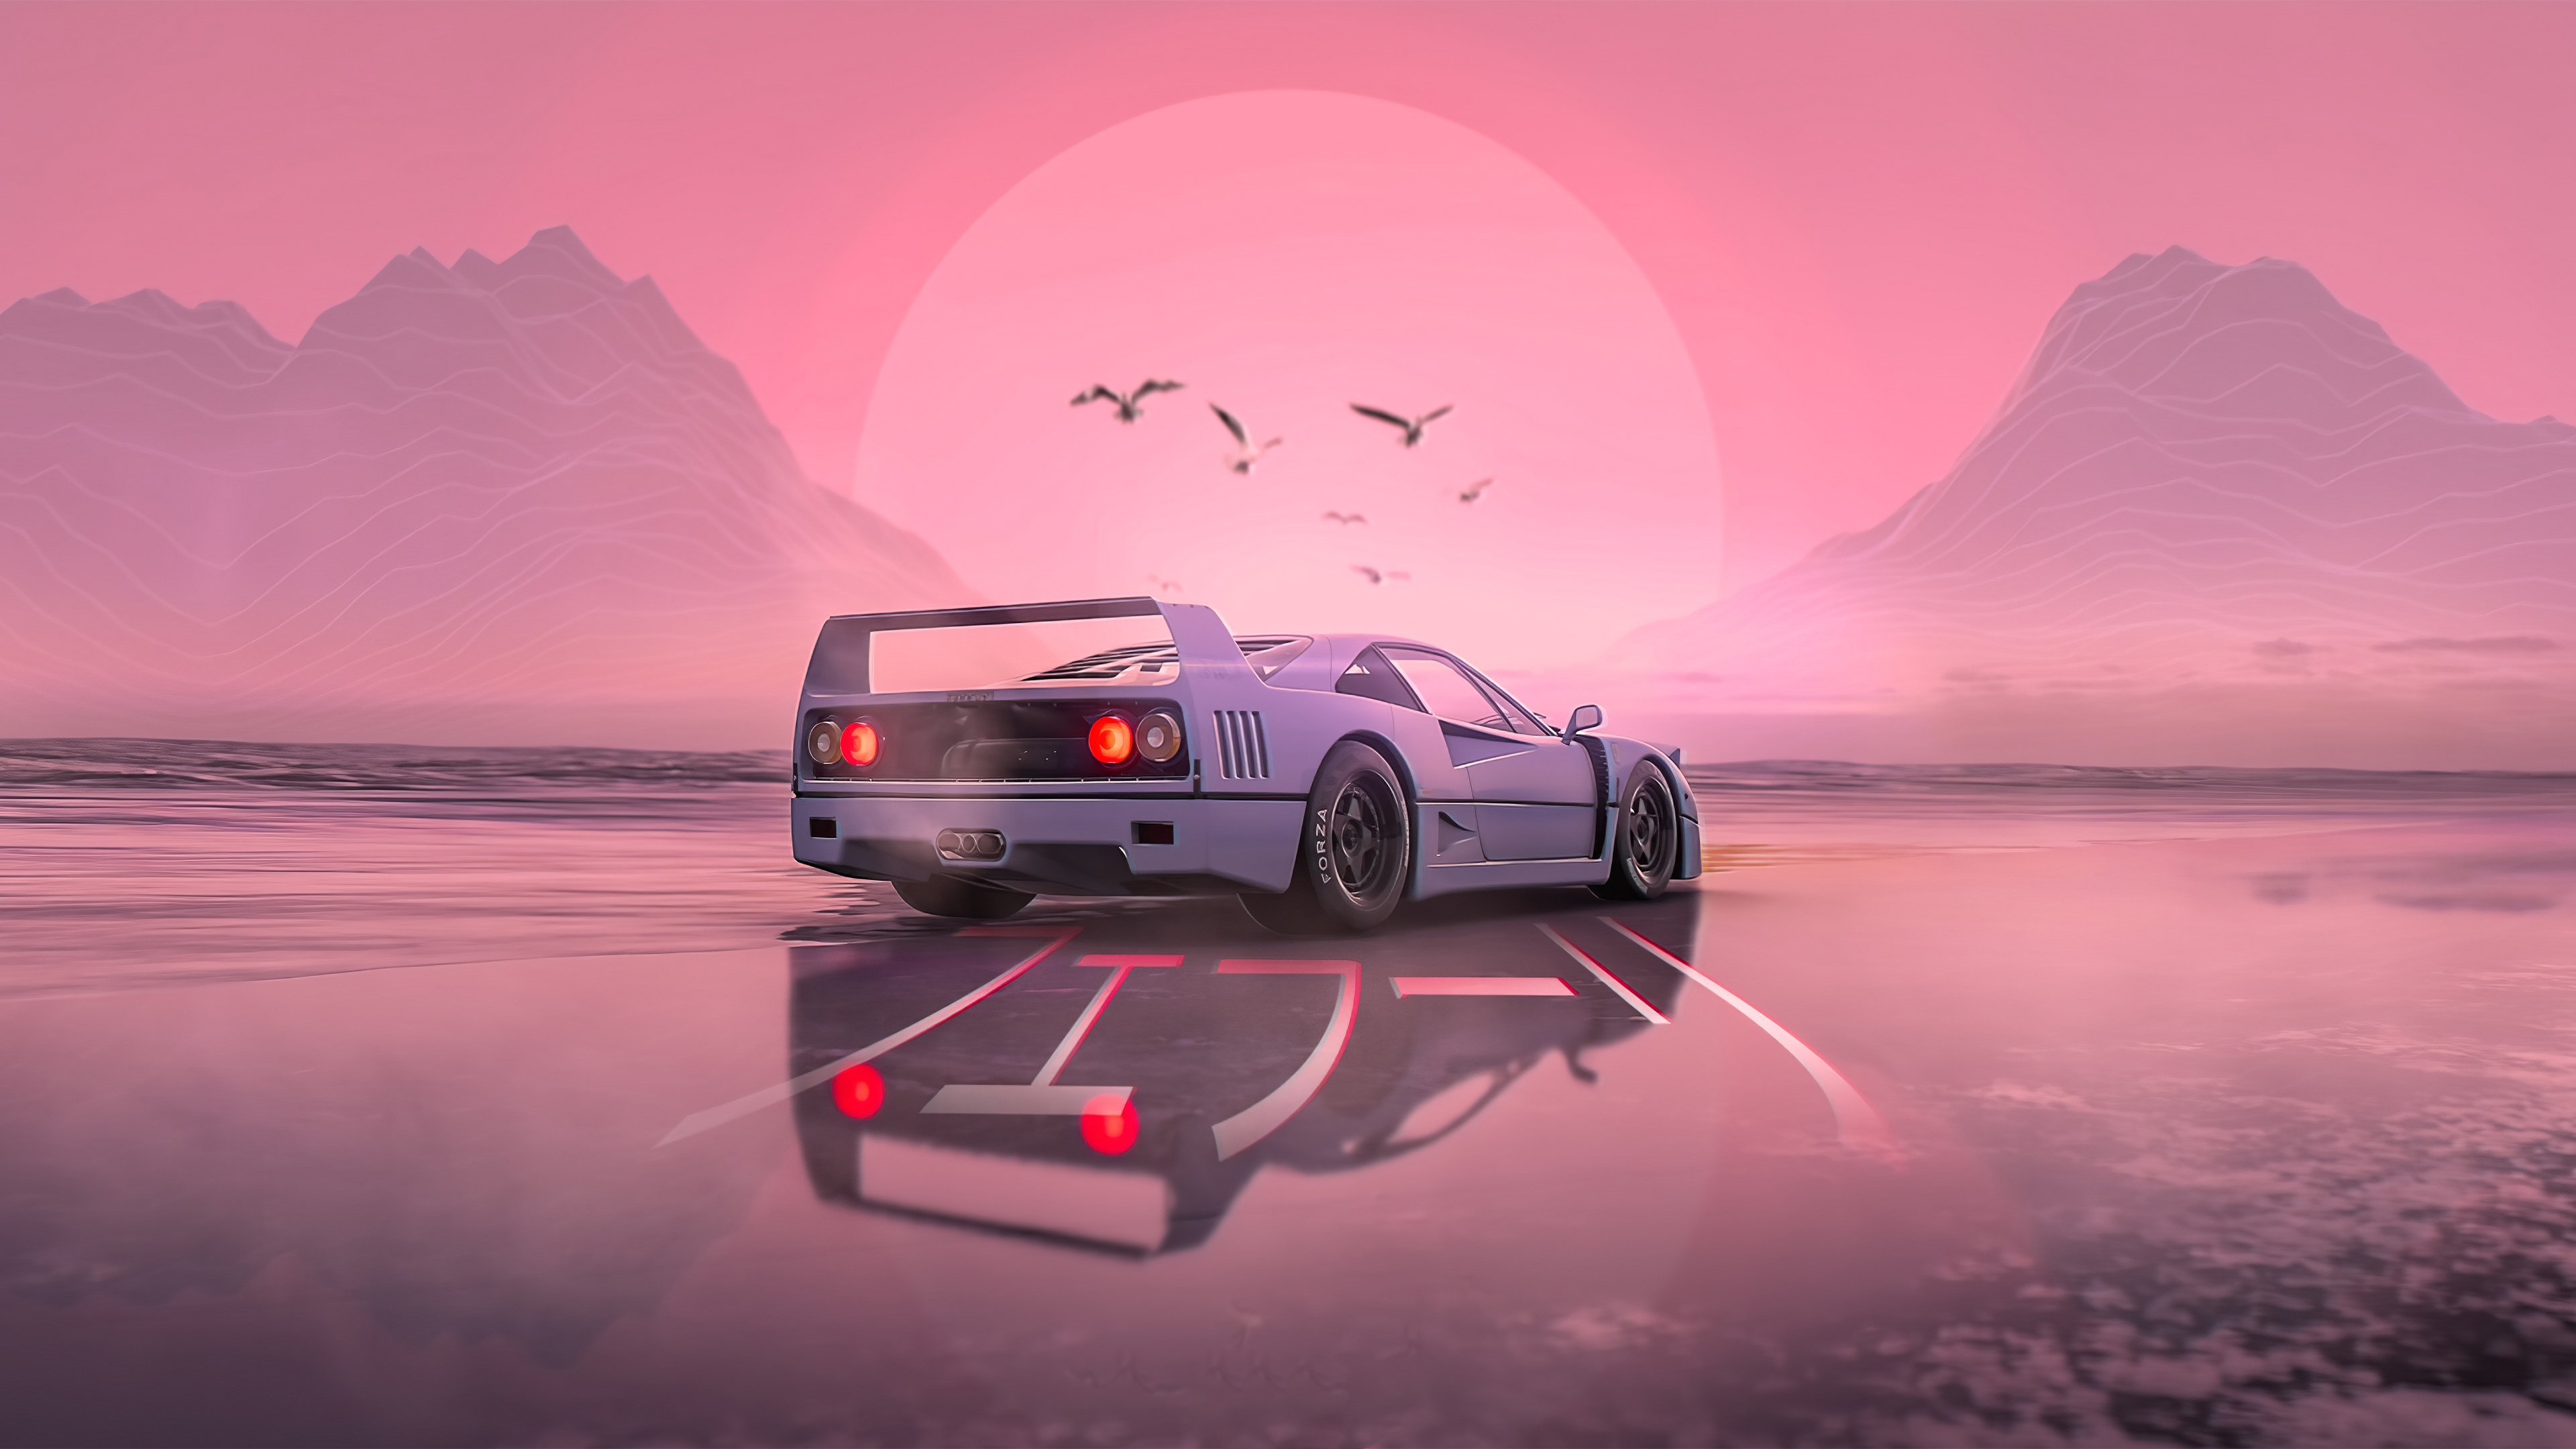 Retro Wave Cars Wallpapers Wallpaper Cave